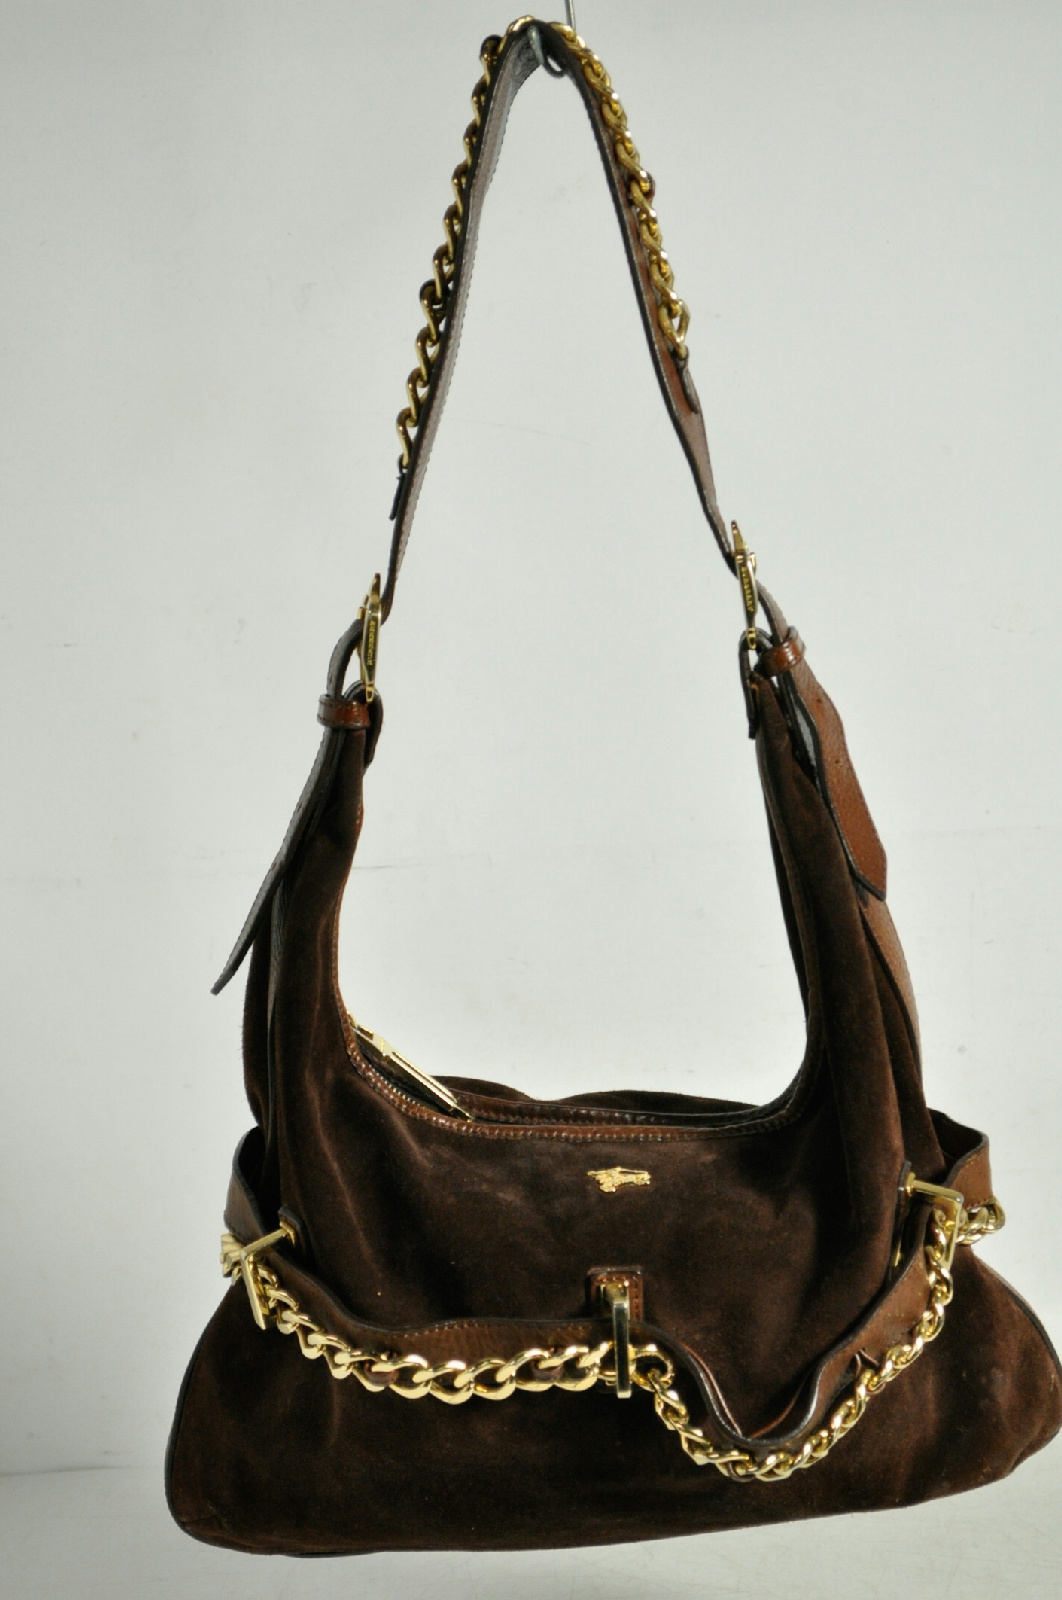 Find great deals on eBay for suede brown hobo bag. Shop with confidence.